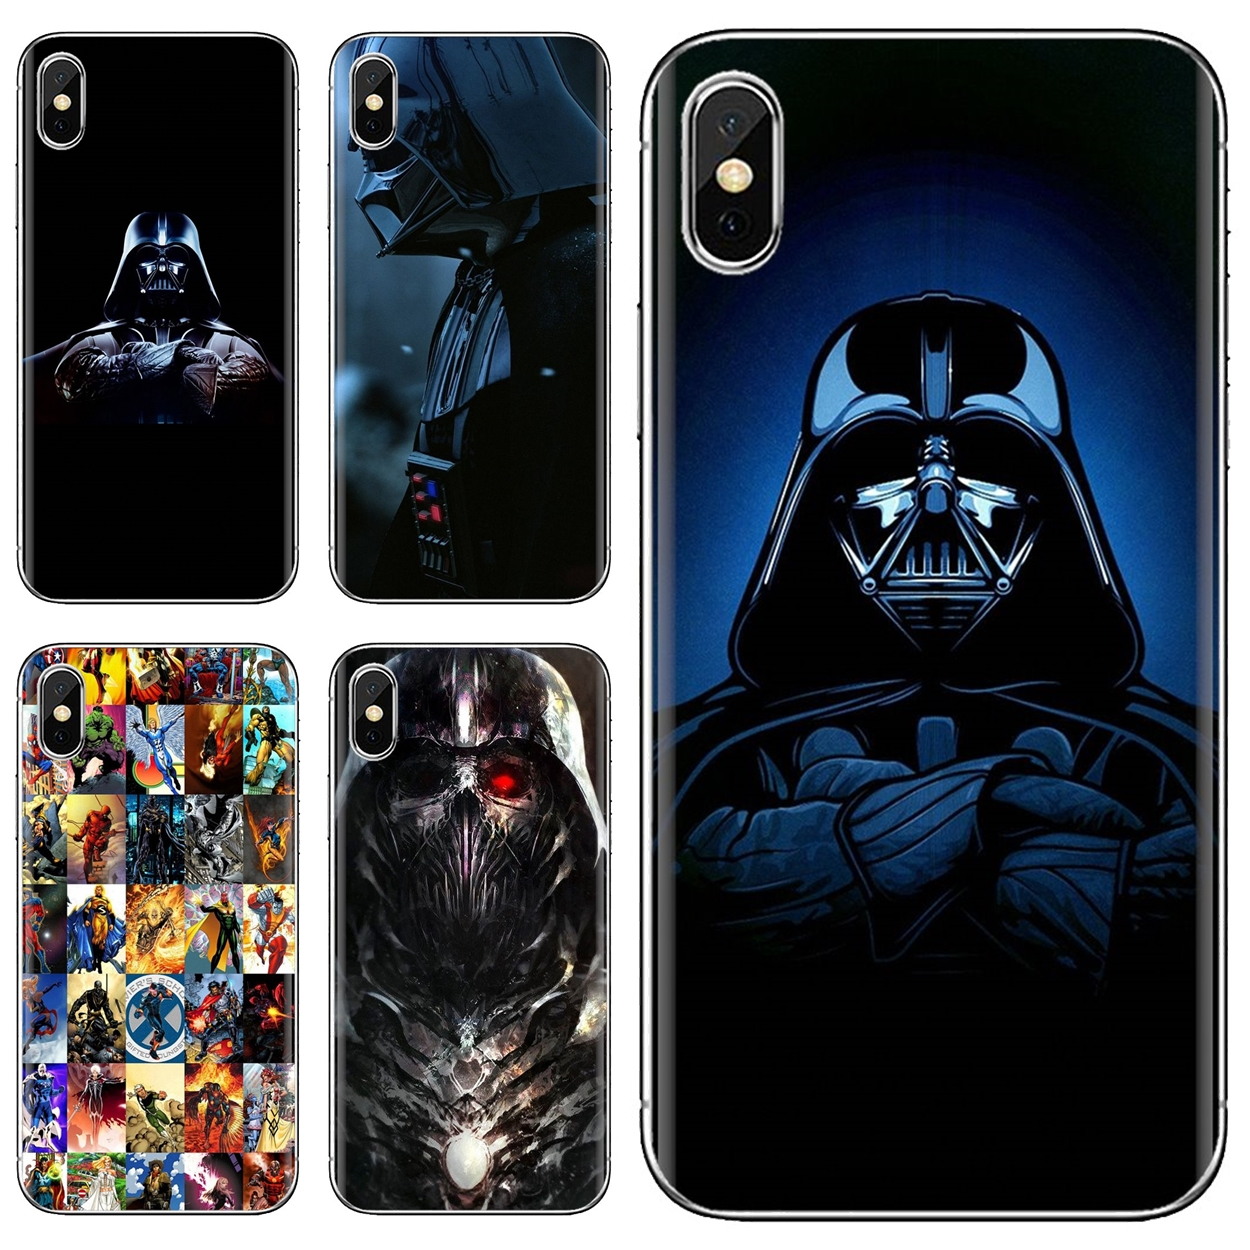 STAR WARS THE FORCE AWAKENS DROIDS iPHONE 5 CASE BRAND NEW IN GIFT BOX 5S